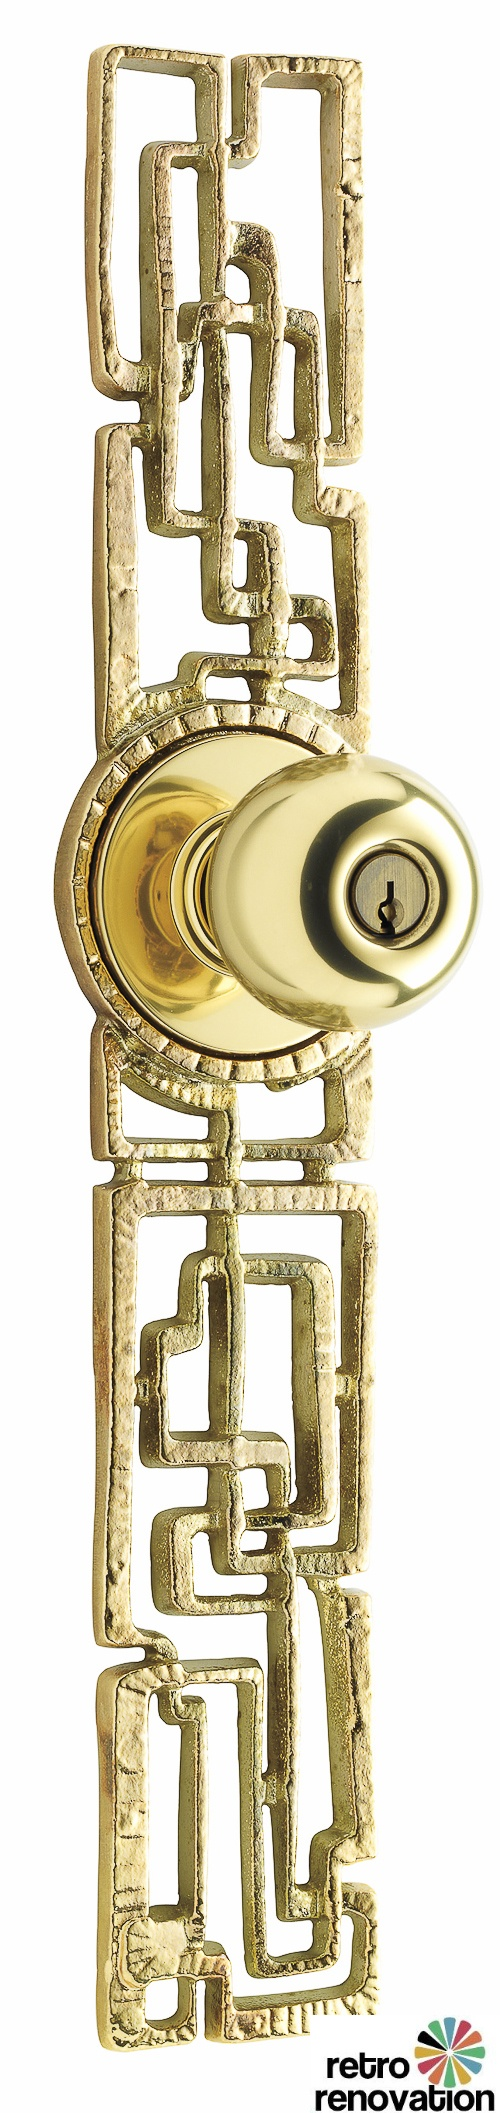 Rejuvenation Hardware Samba doorset escutcheon